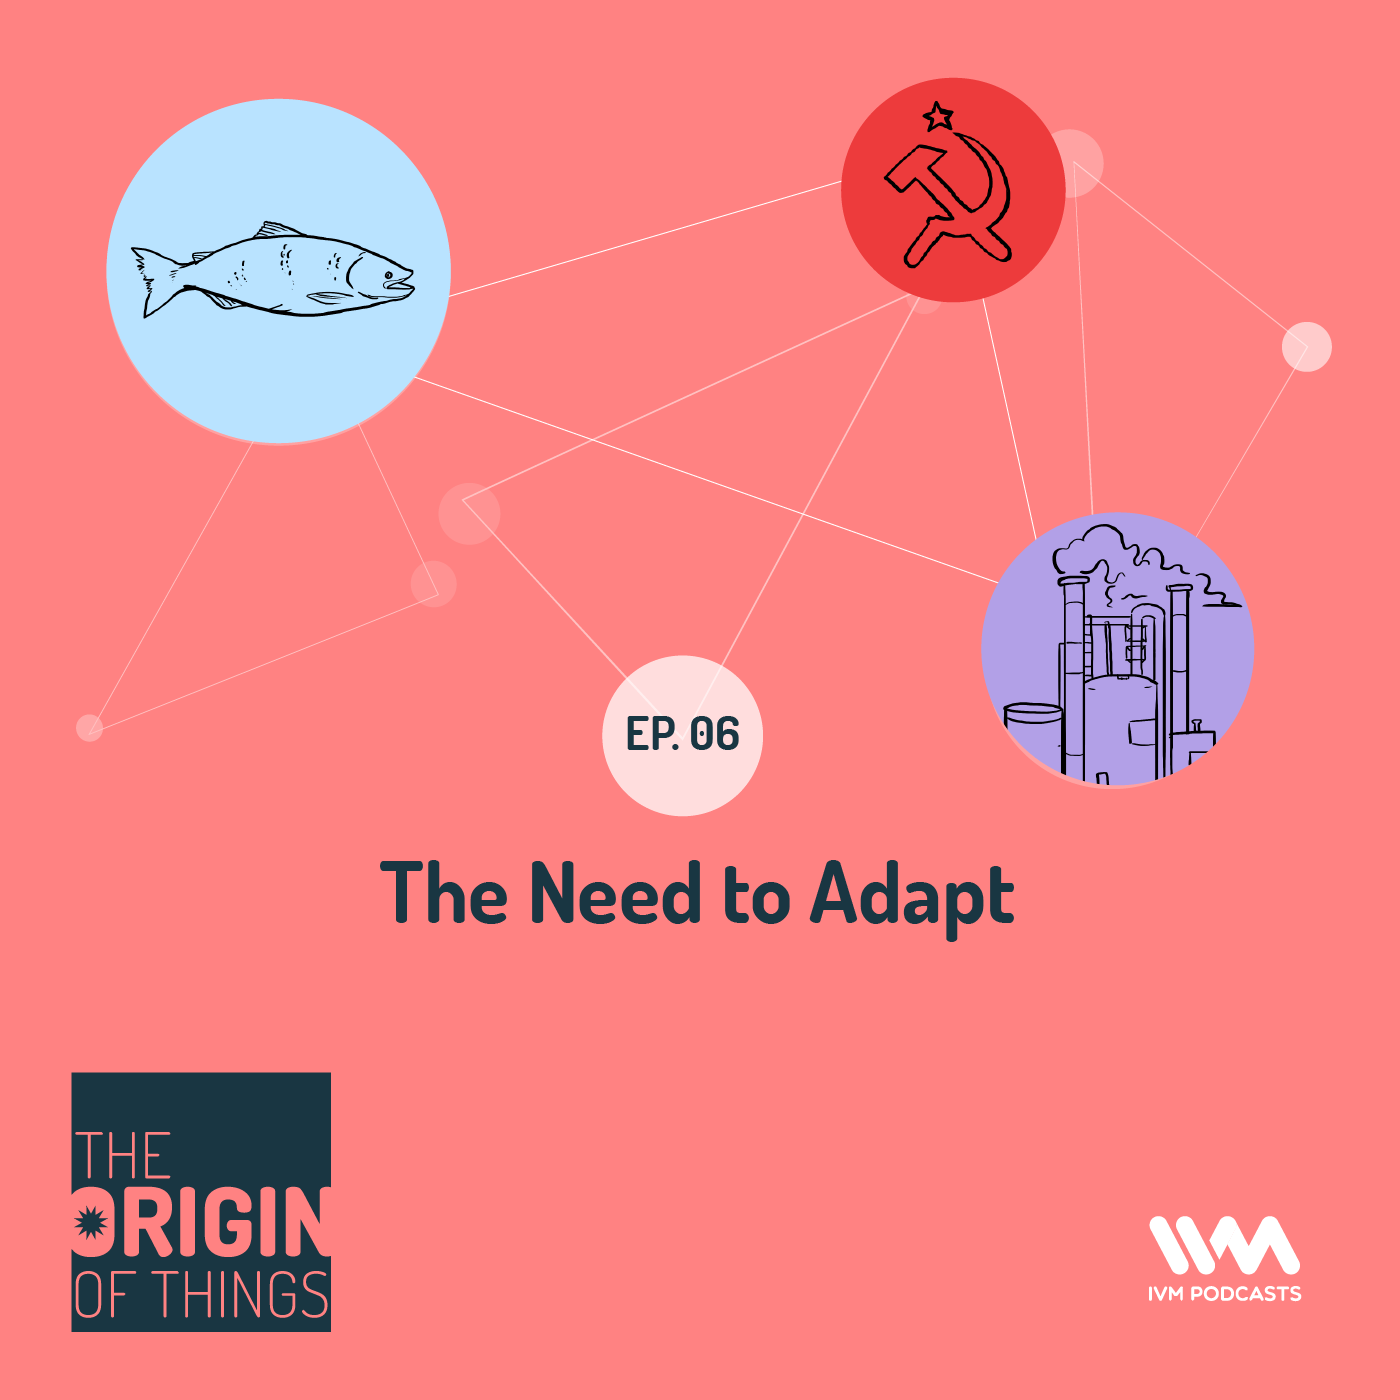 Ep. 06: The Need to Adapt